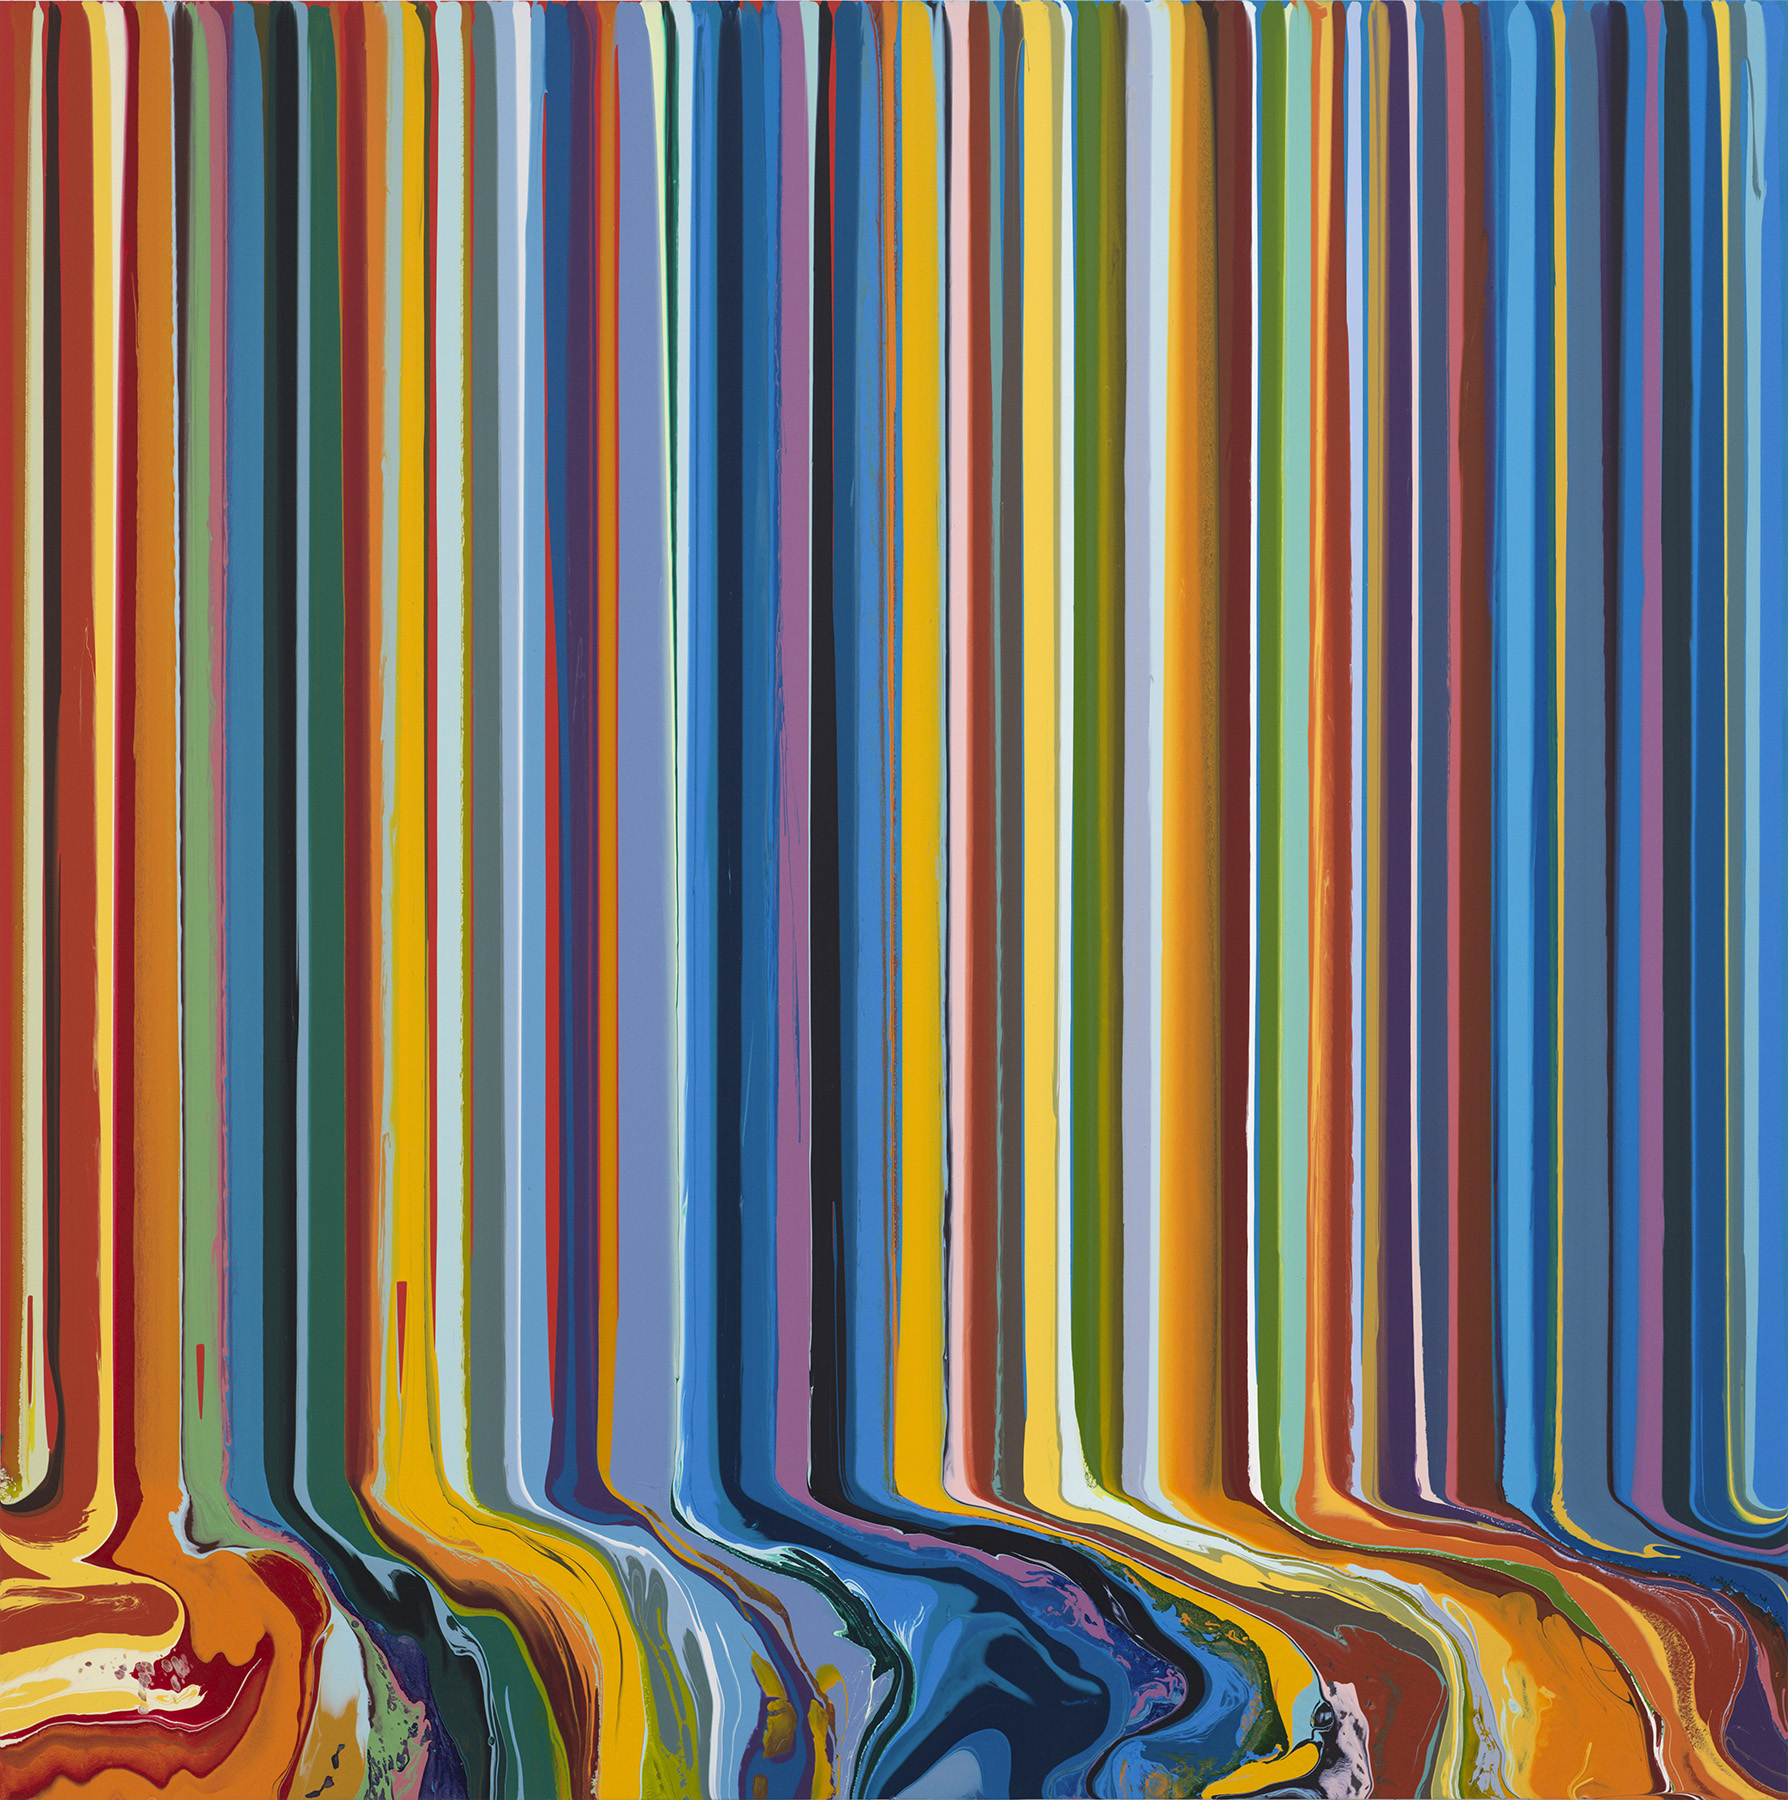 Ian Davenport, Turquoise and Orange Study (After Bonnard), 2018. Acrylic on aluminium mounted on aluminium panel, 101.6 x 101.6 cm